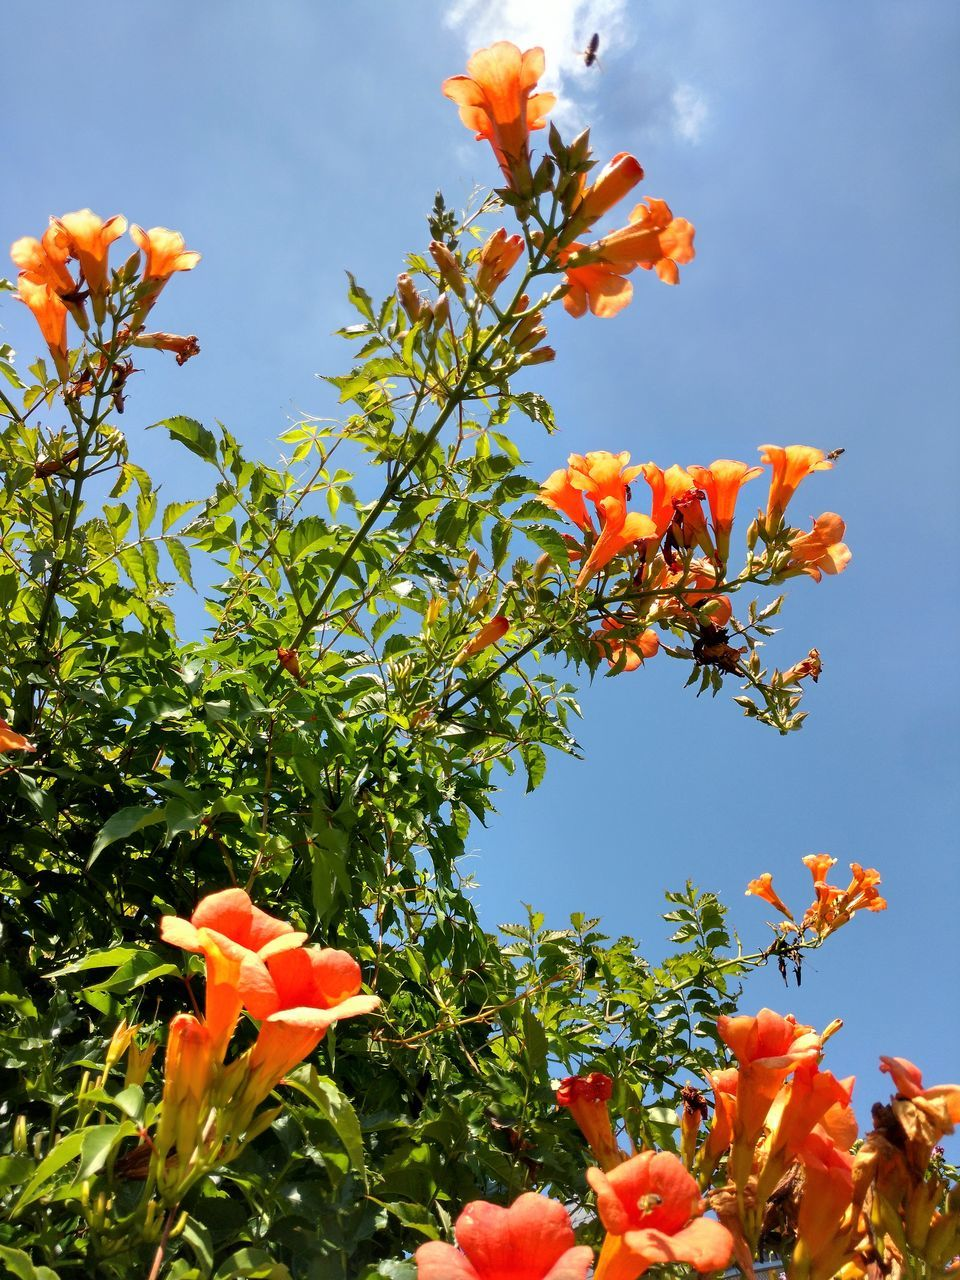 orange color, growth, flower, beauty in nature, nature, petal, freshness, fragility, day, blooming, plant, flower head, no people, outdoors, low angle view, close-up, sky, tree